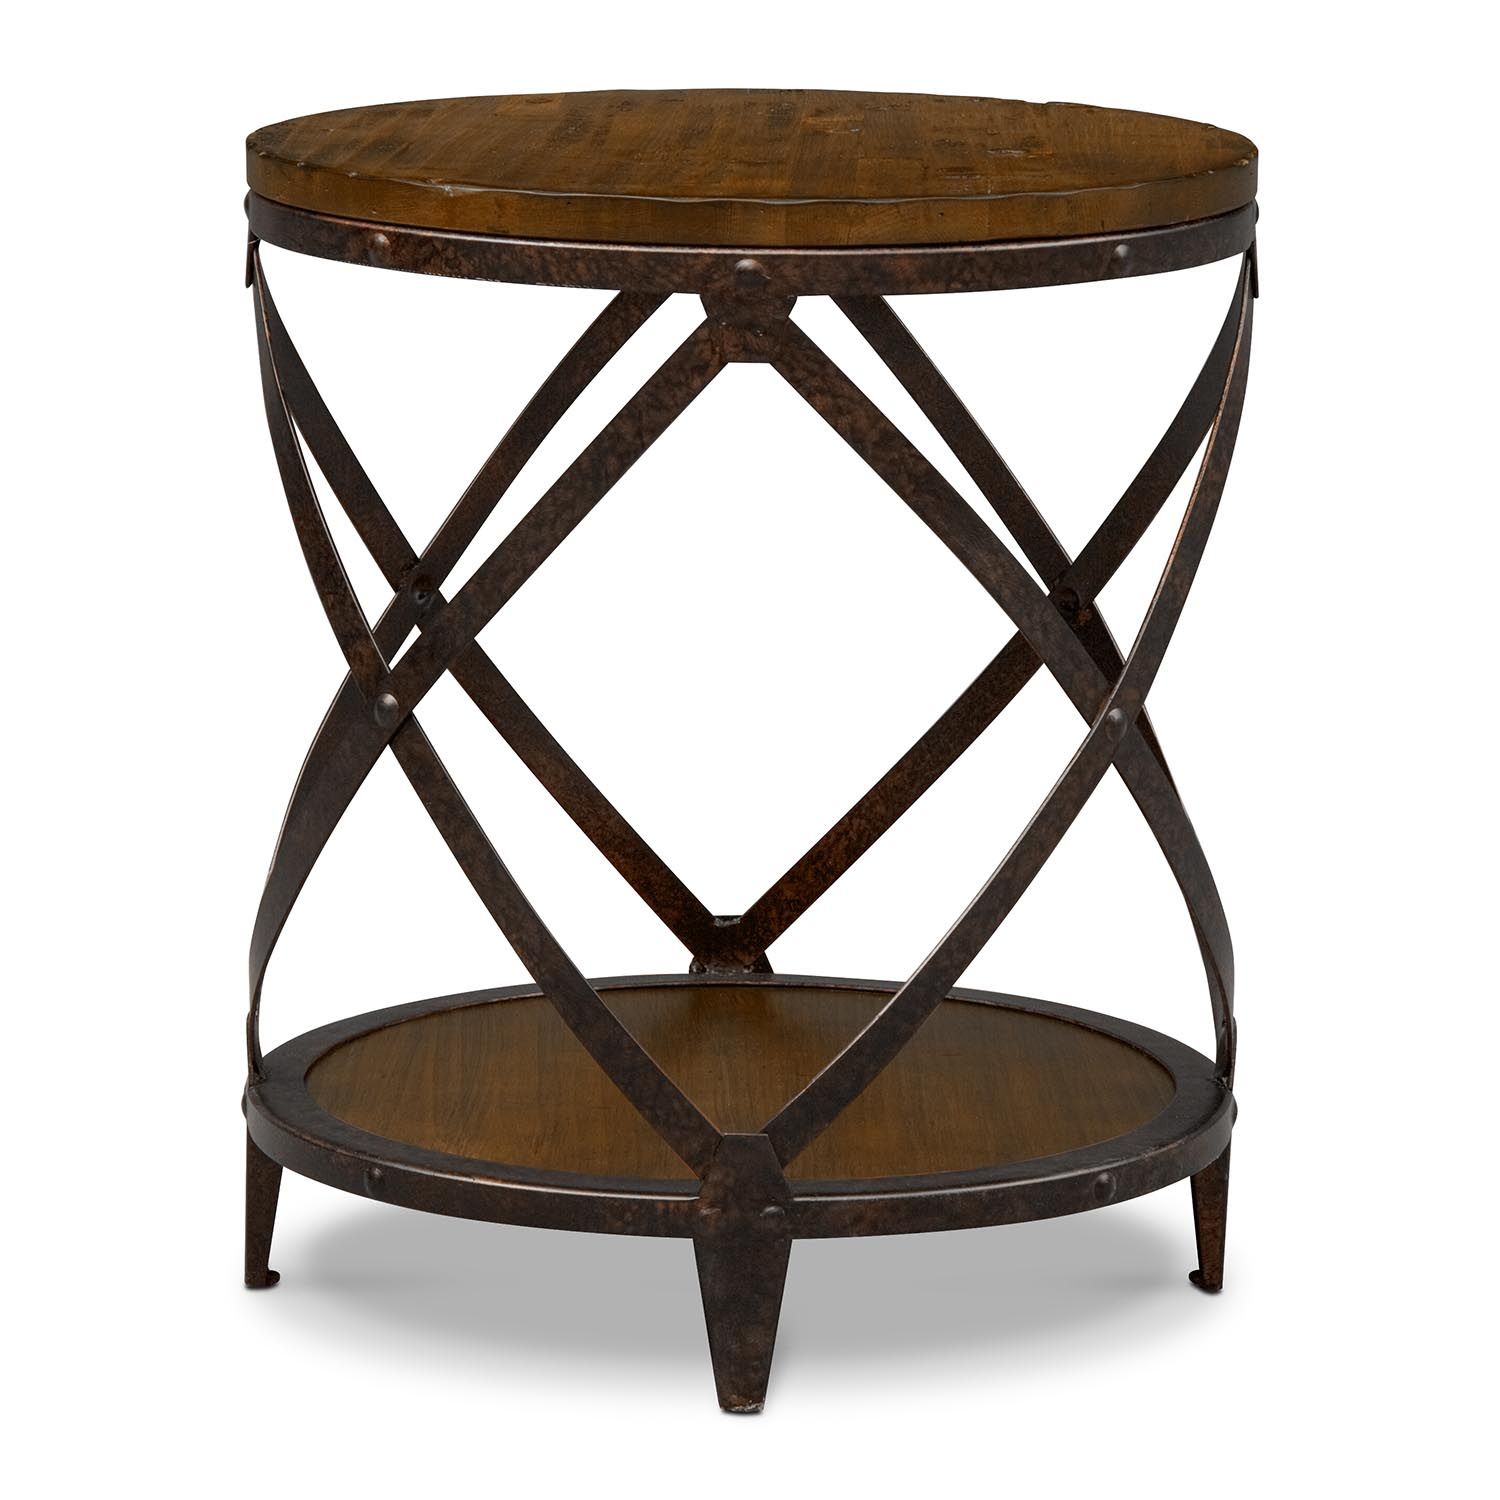 rustic round end table coffee table design ideas. Black Bedroom Furniture Sets. Home Design Ideas